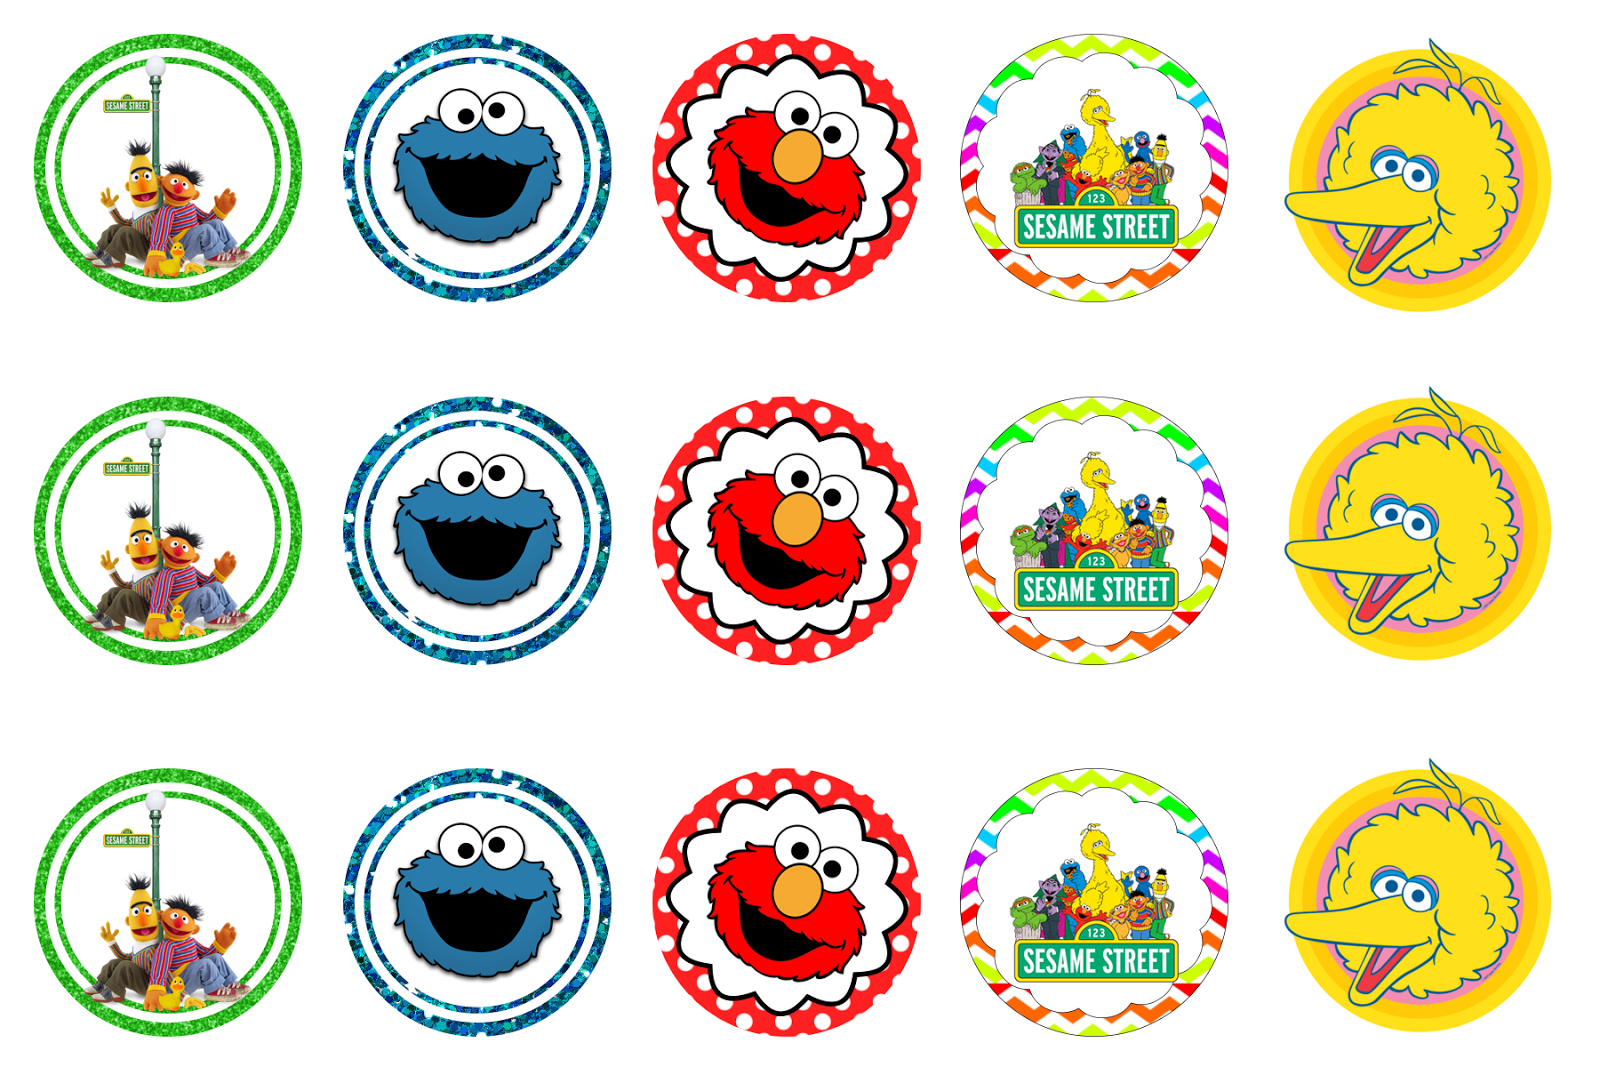 Sesame Street Party Invitations Free Template moreover Free Printable Elmo Face Template moreover Elmo Birthday Cakes furthermore My Life also Oscars Award Party Dessert Tray. on oscar party cupcake toppers